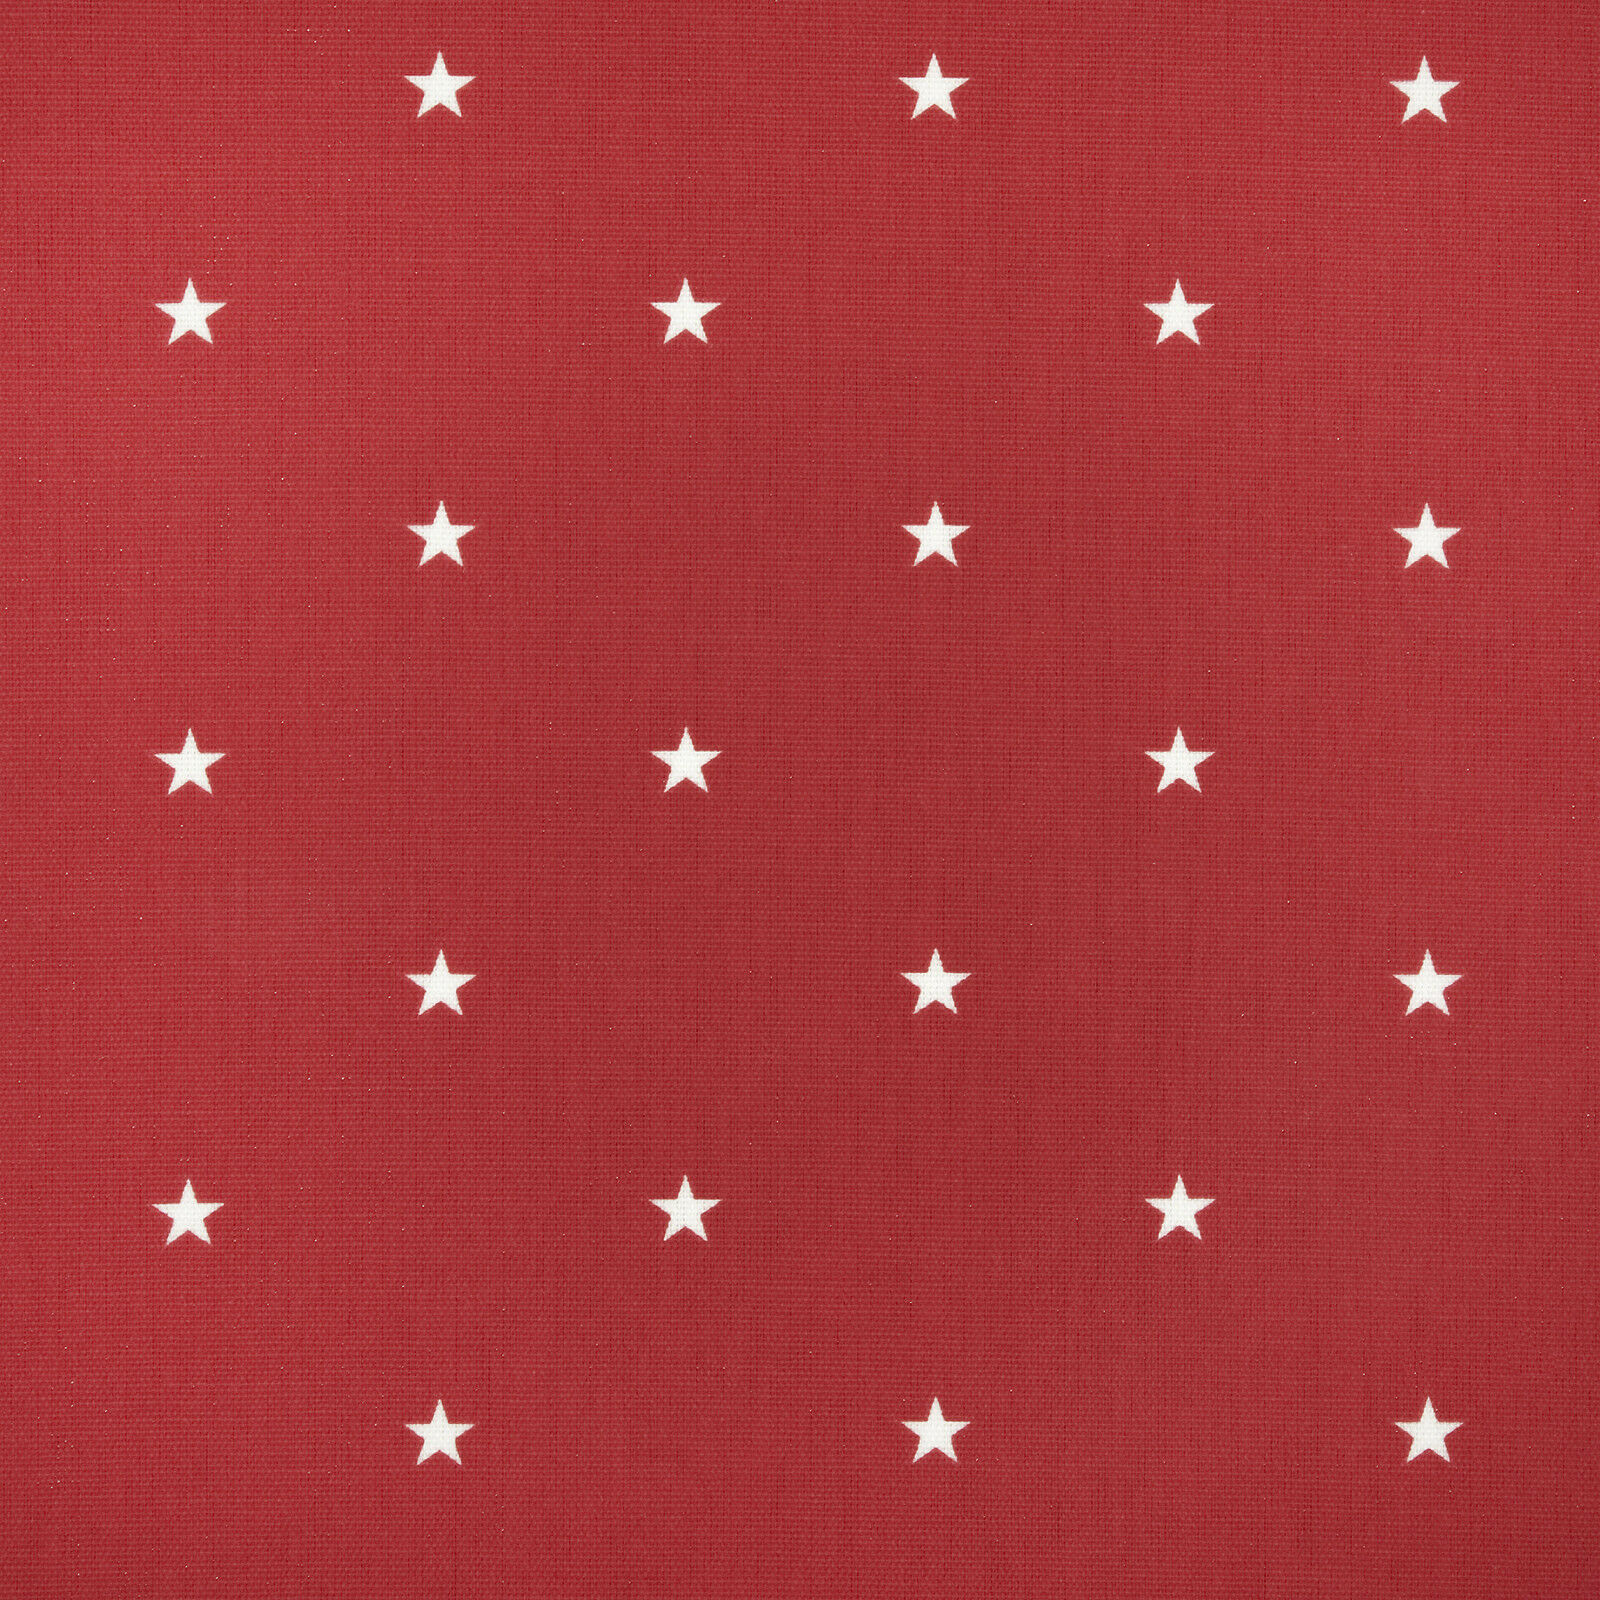 Red and White Star PVC, Wipeclean, Oilcloth Tablecloth